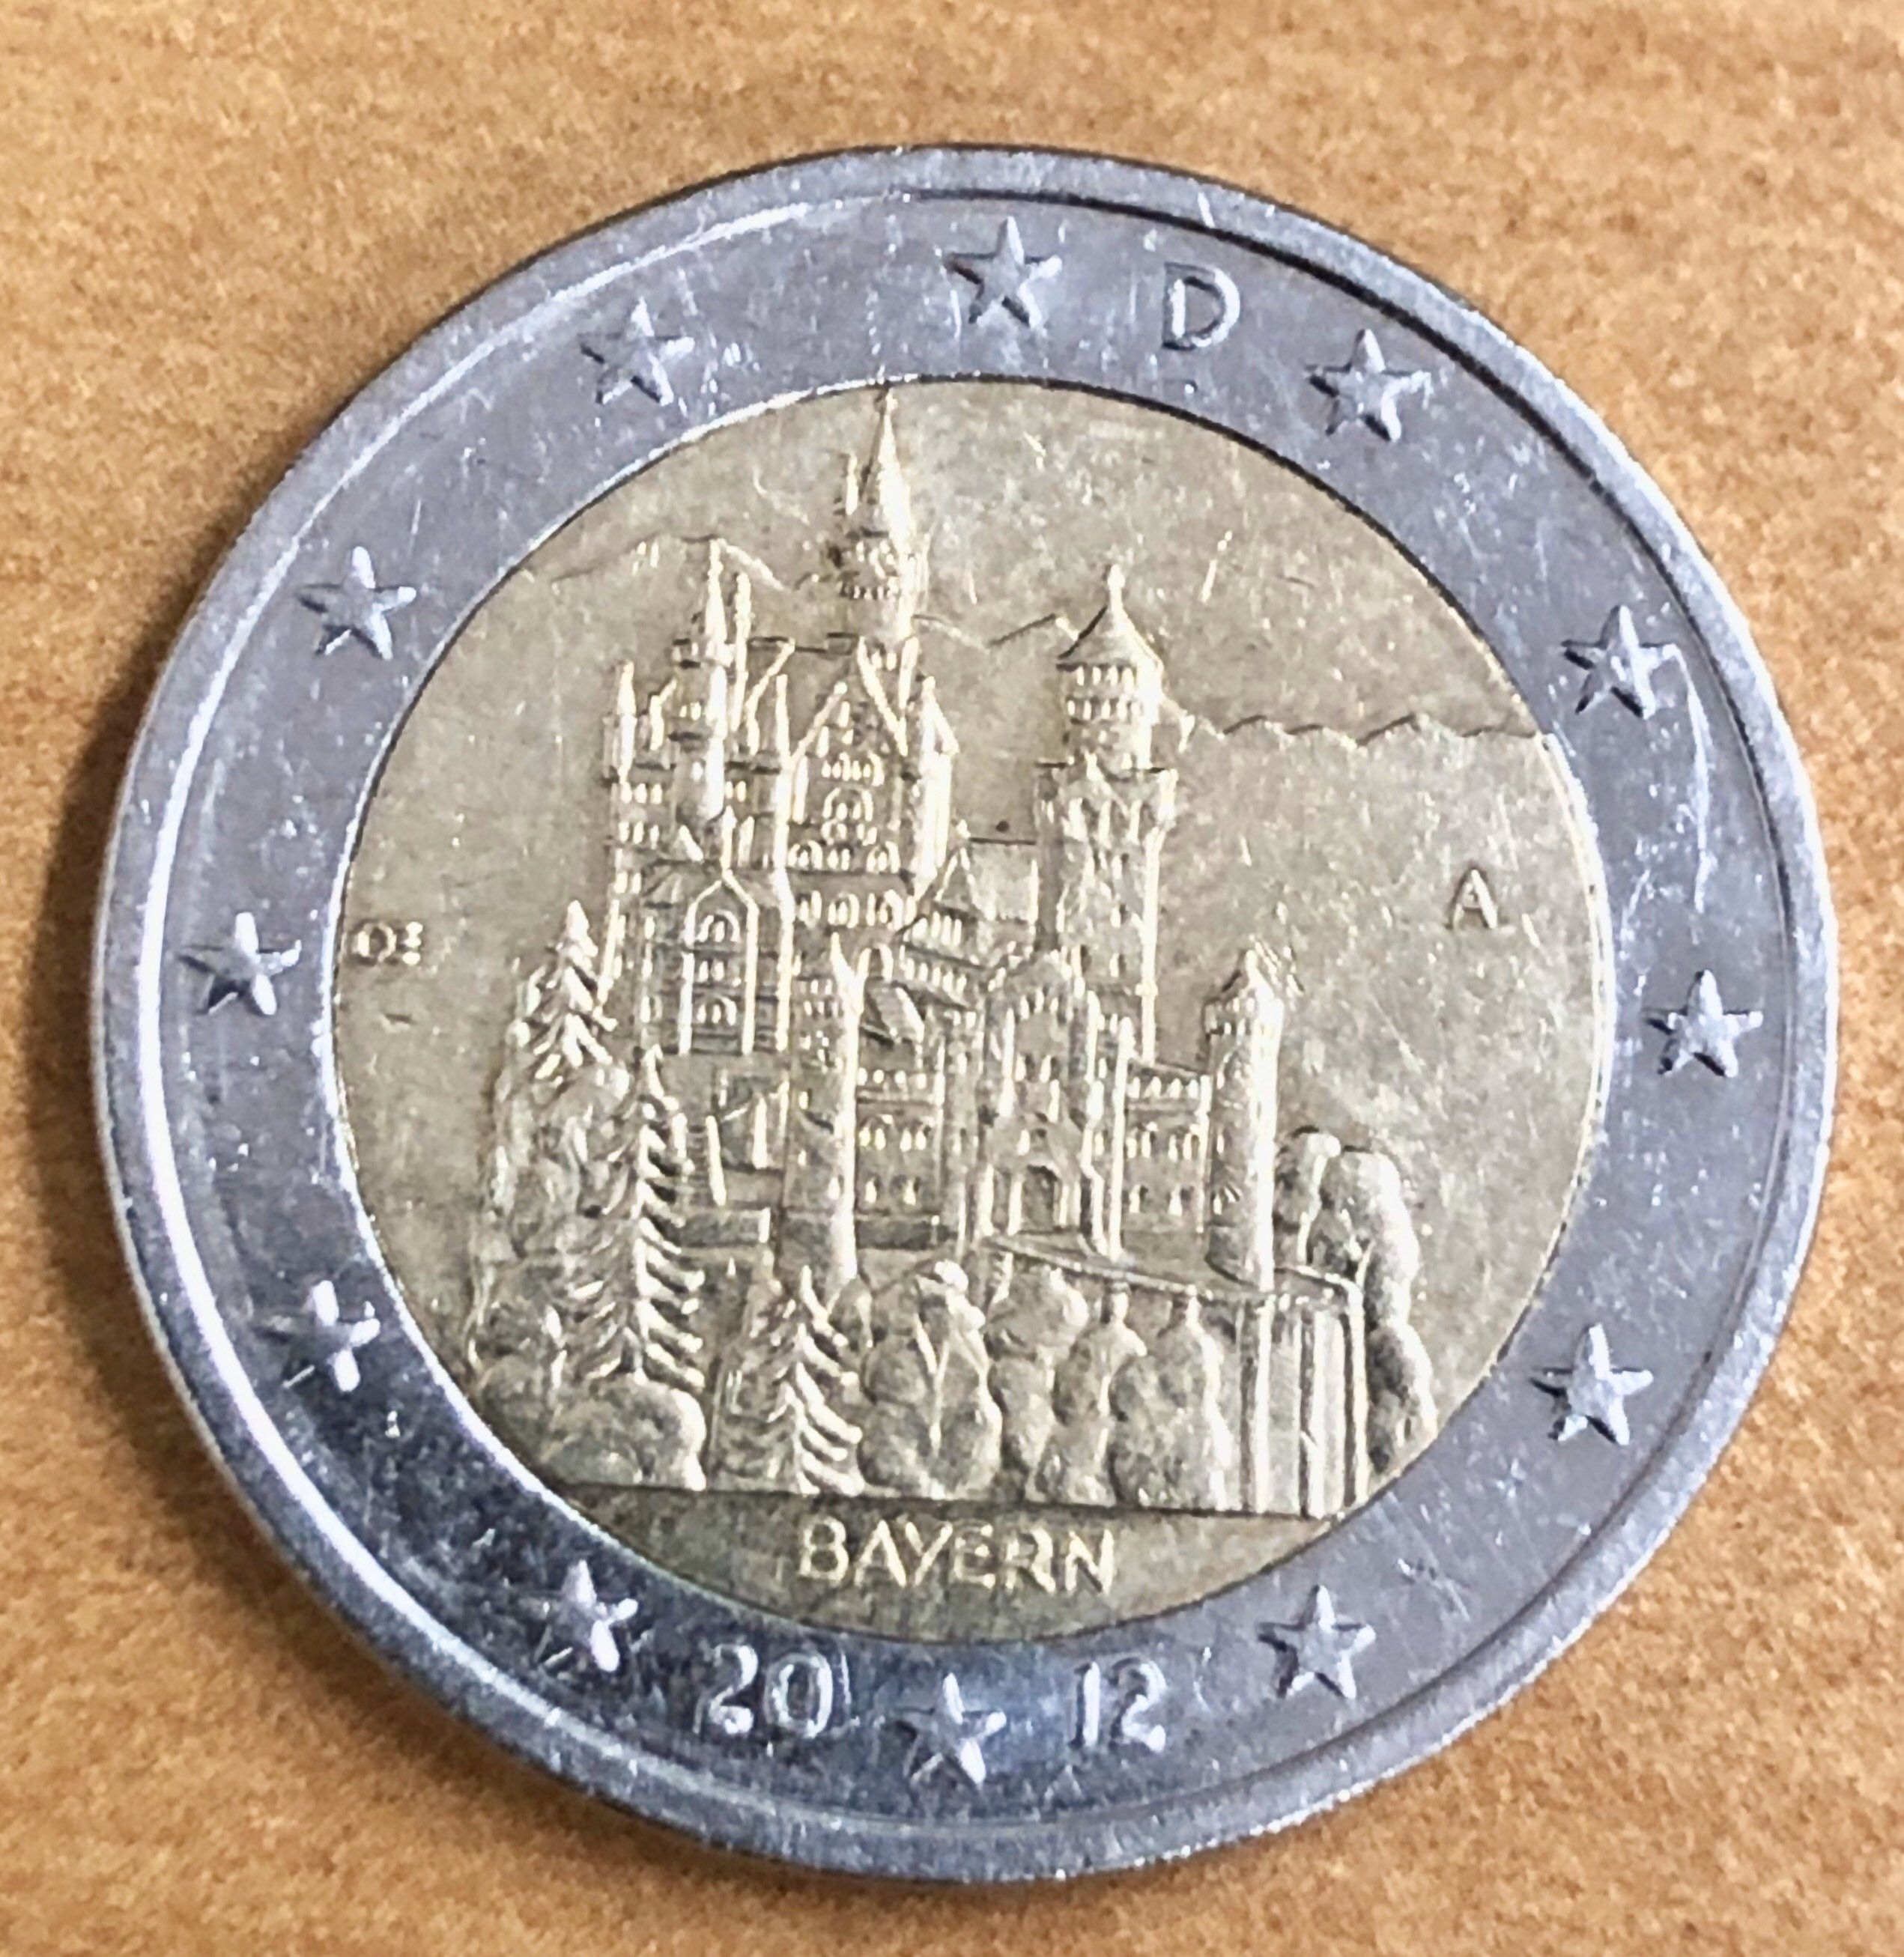 Coin 2 Euro Italy 2004 World Food Programme Com Vozeli Com